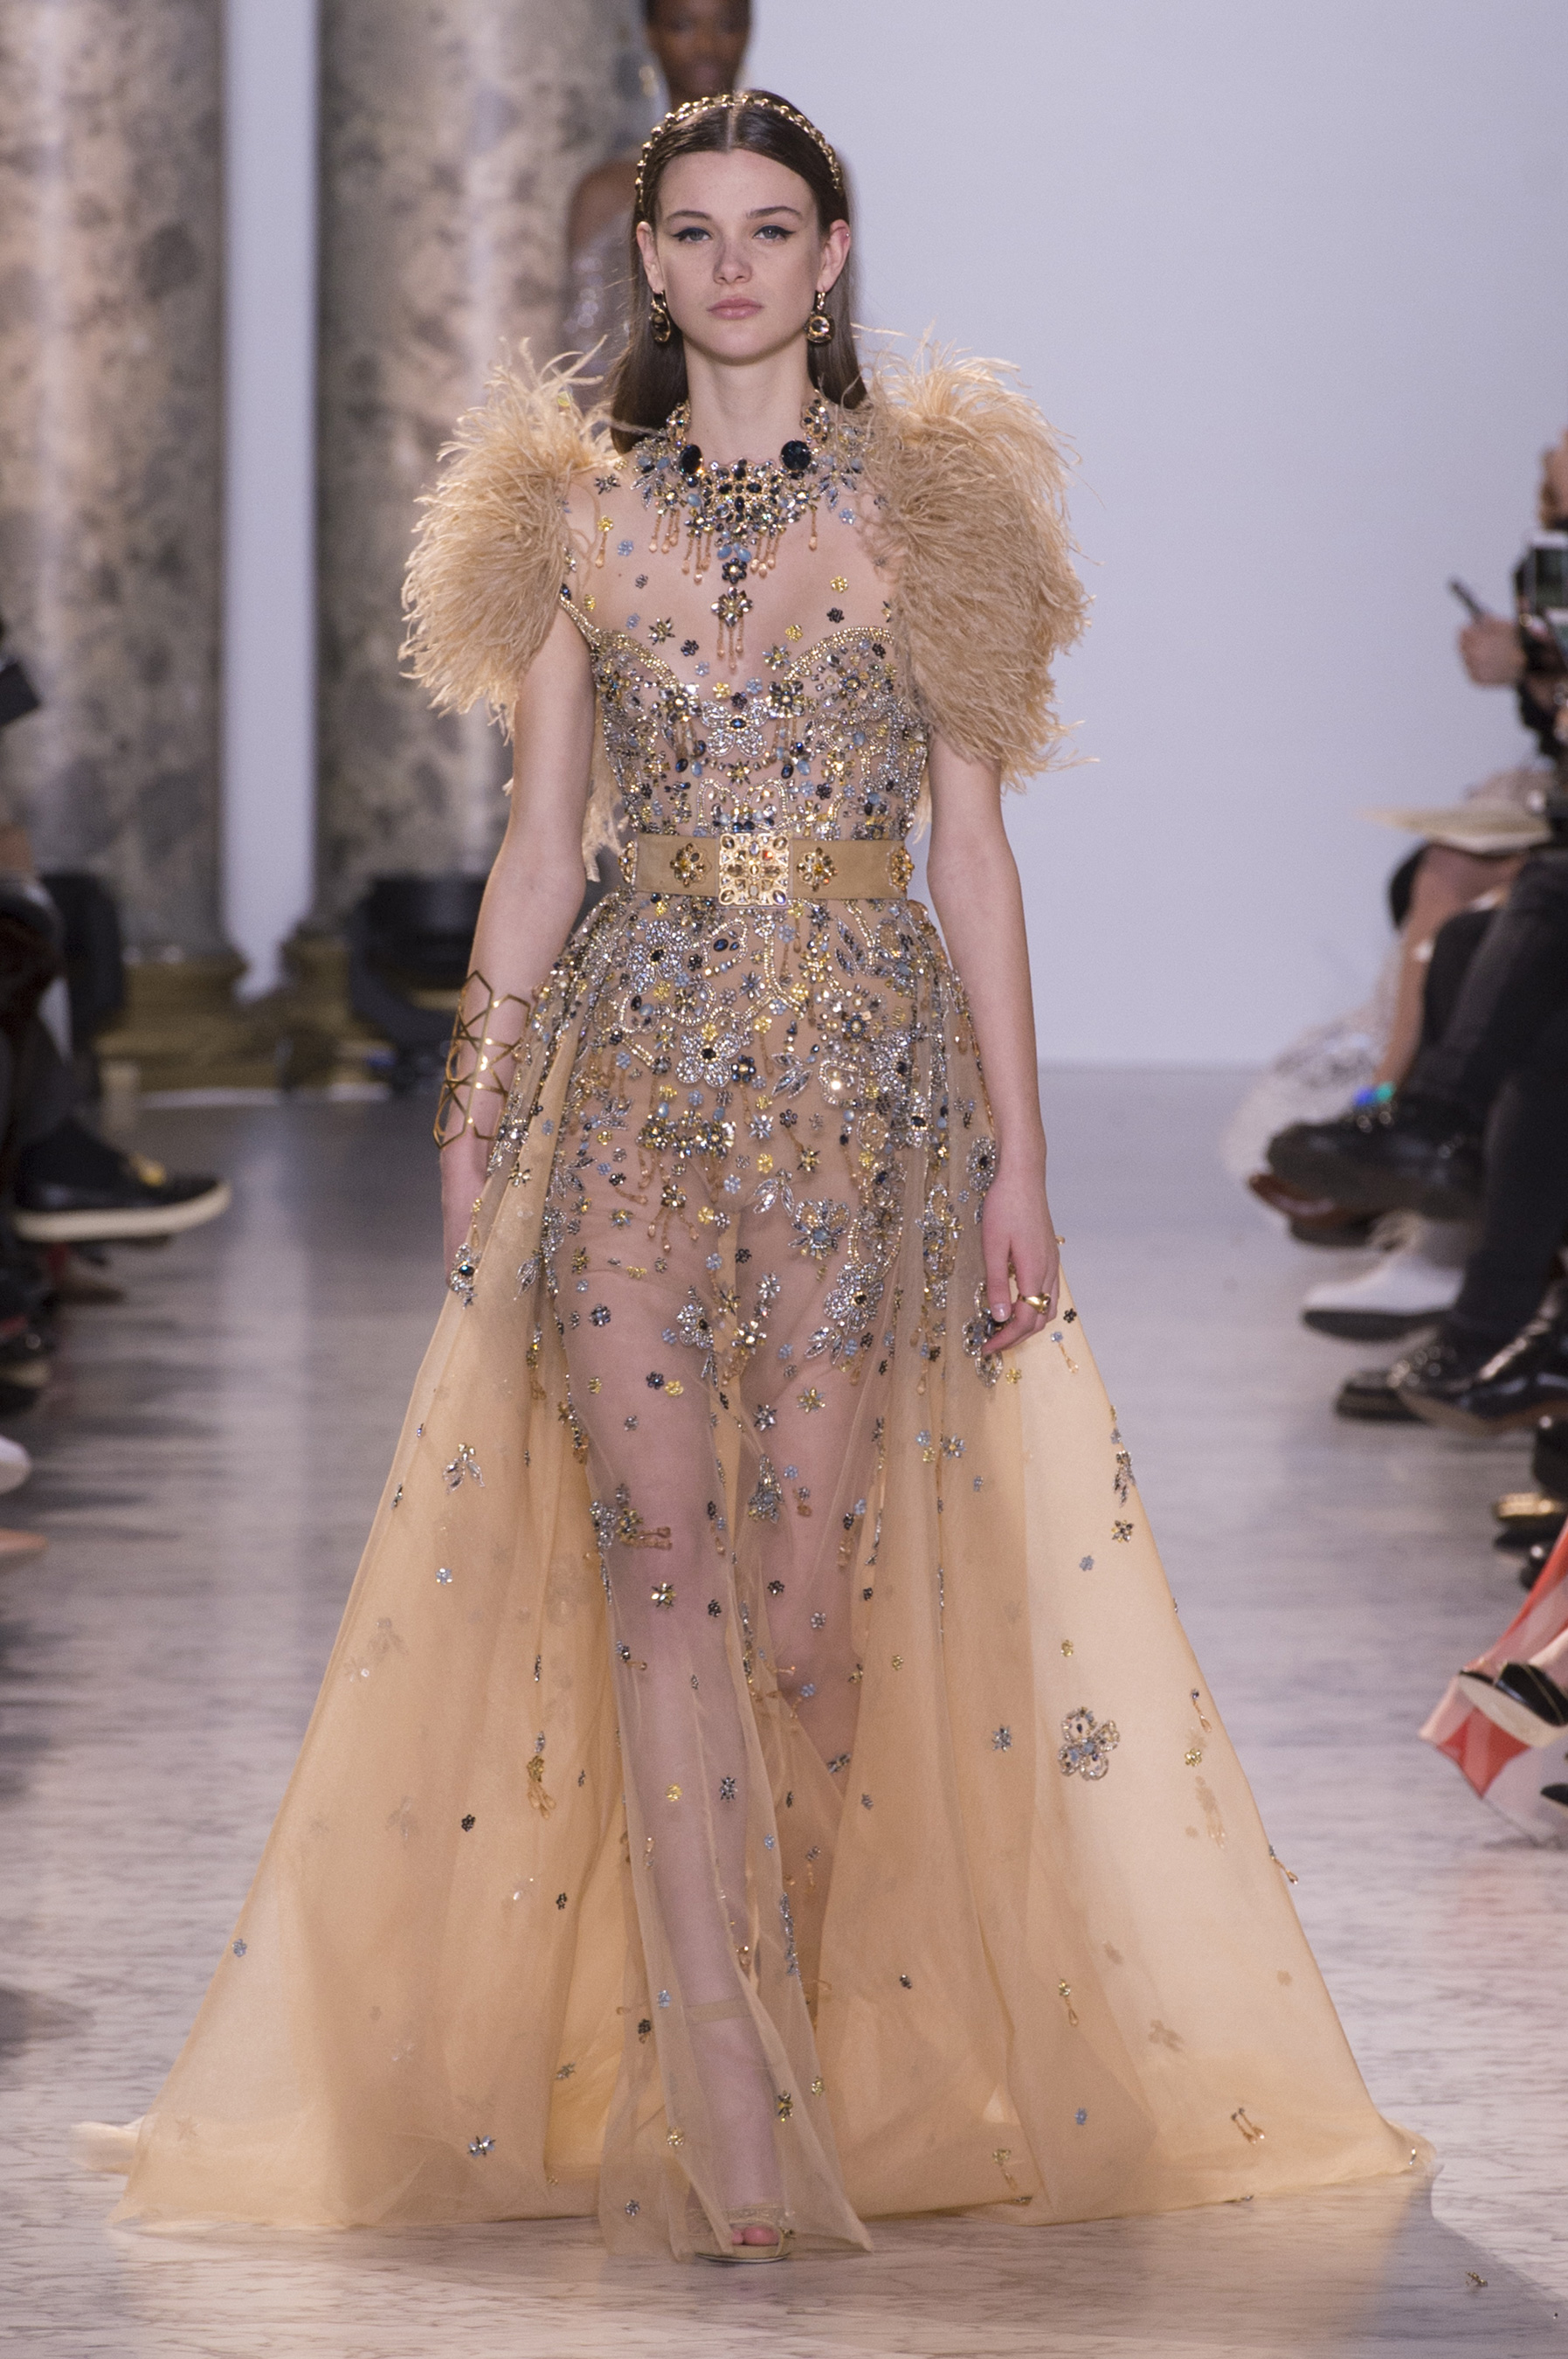 Elie saab spring 2017 couture fashion show the impression for Couture clothing